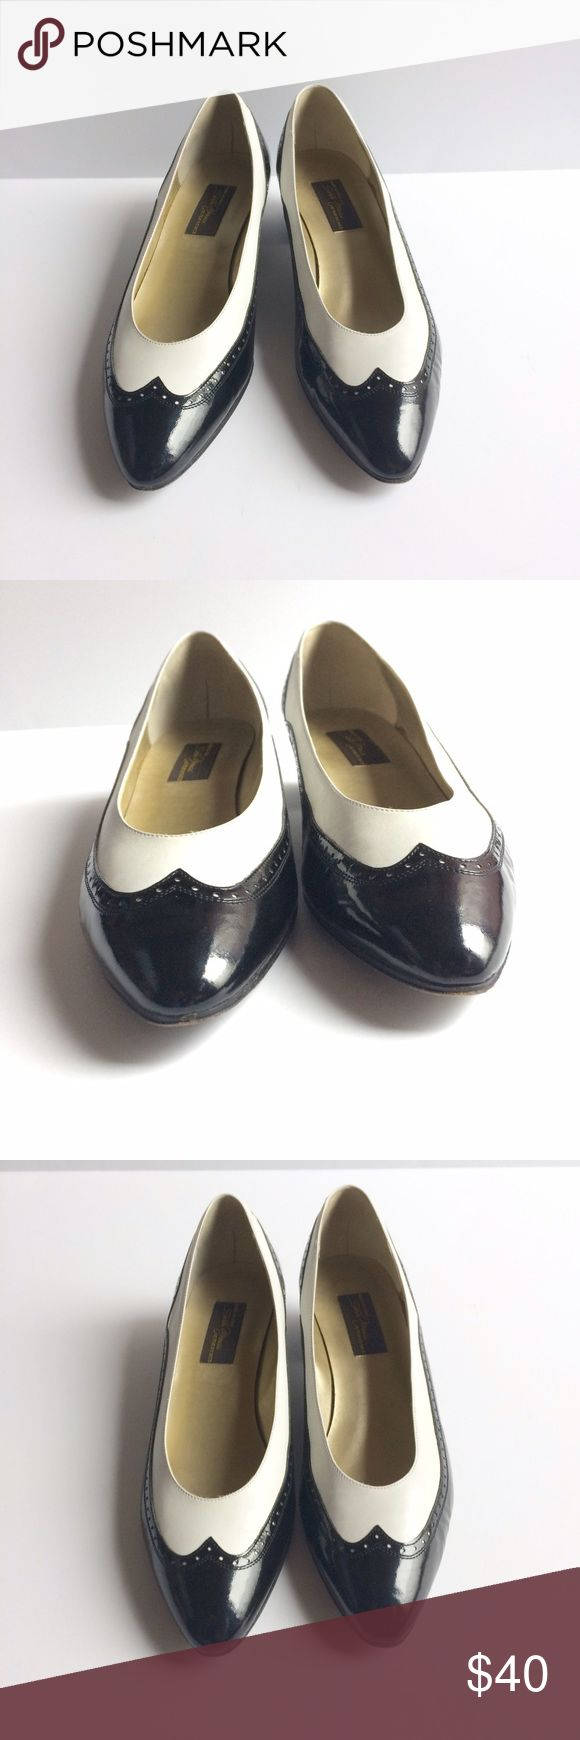 Vintage Sesto Meucci Brogue Pumps Black and White Patent leather Brogue Pumps. 80s Vintage in great vintage condition. Made in Italy with leather soles. Sesto Meucci  Shoes